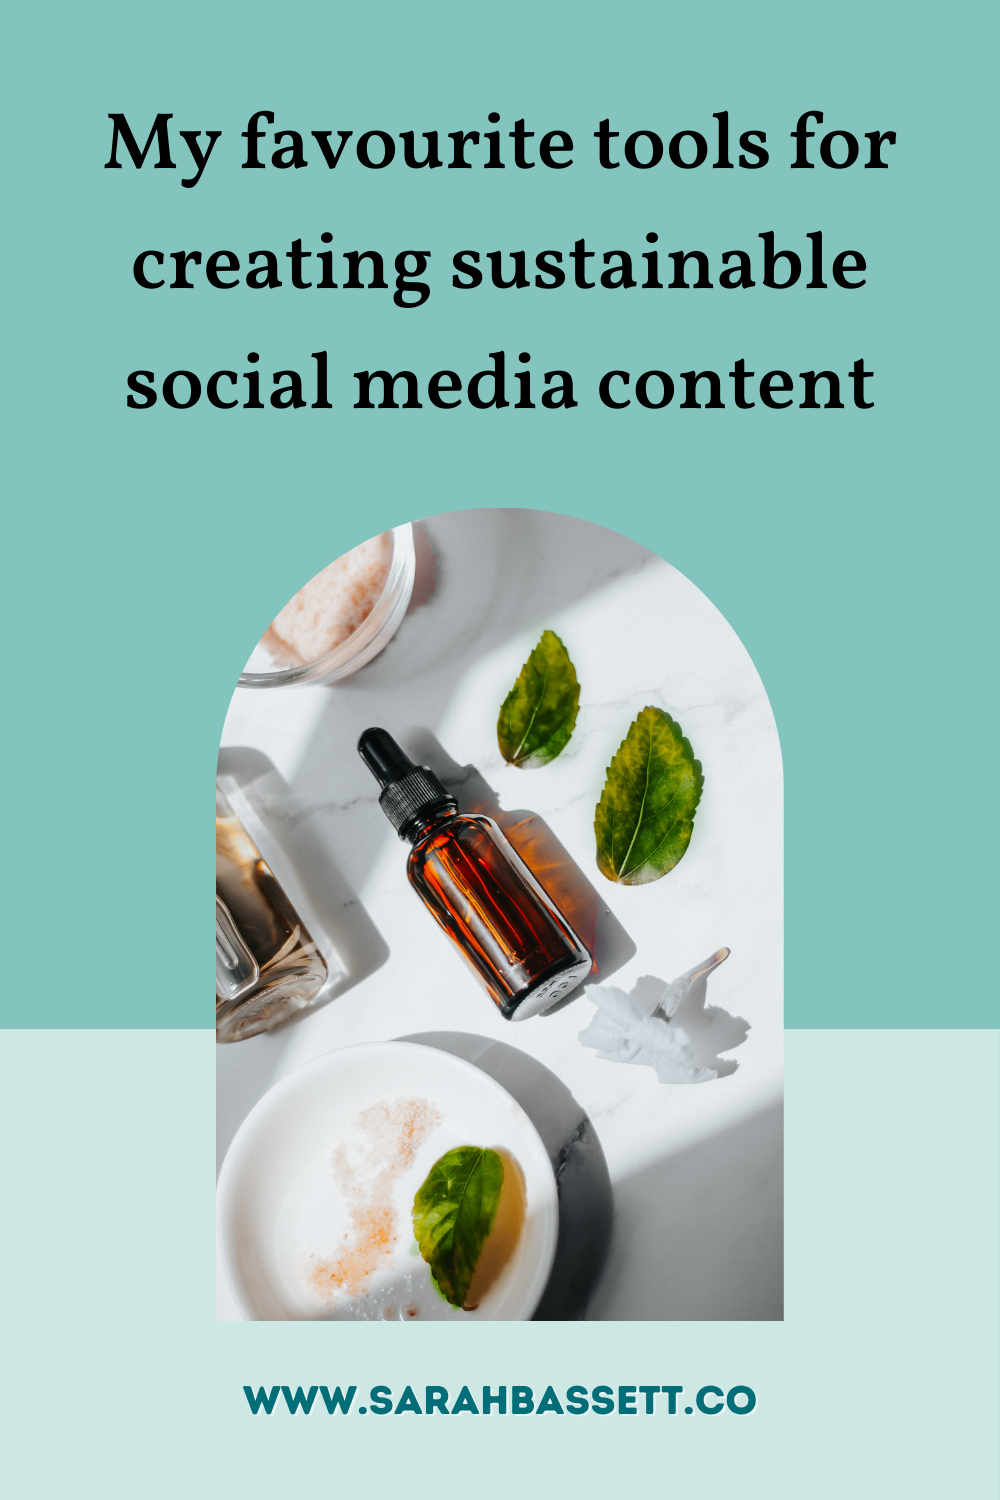 tools for creating sustainable social media content, eco blogging, sustainable business